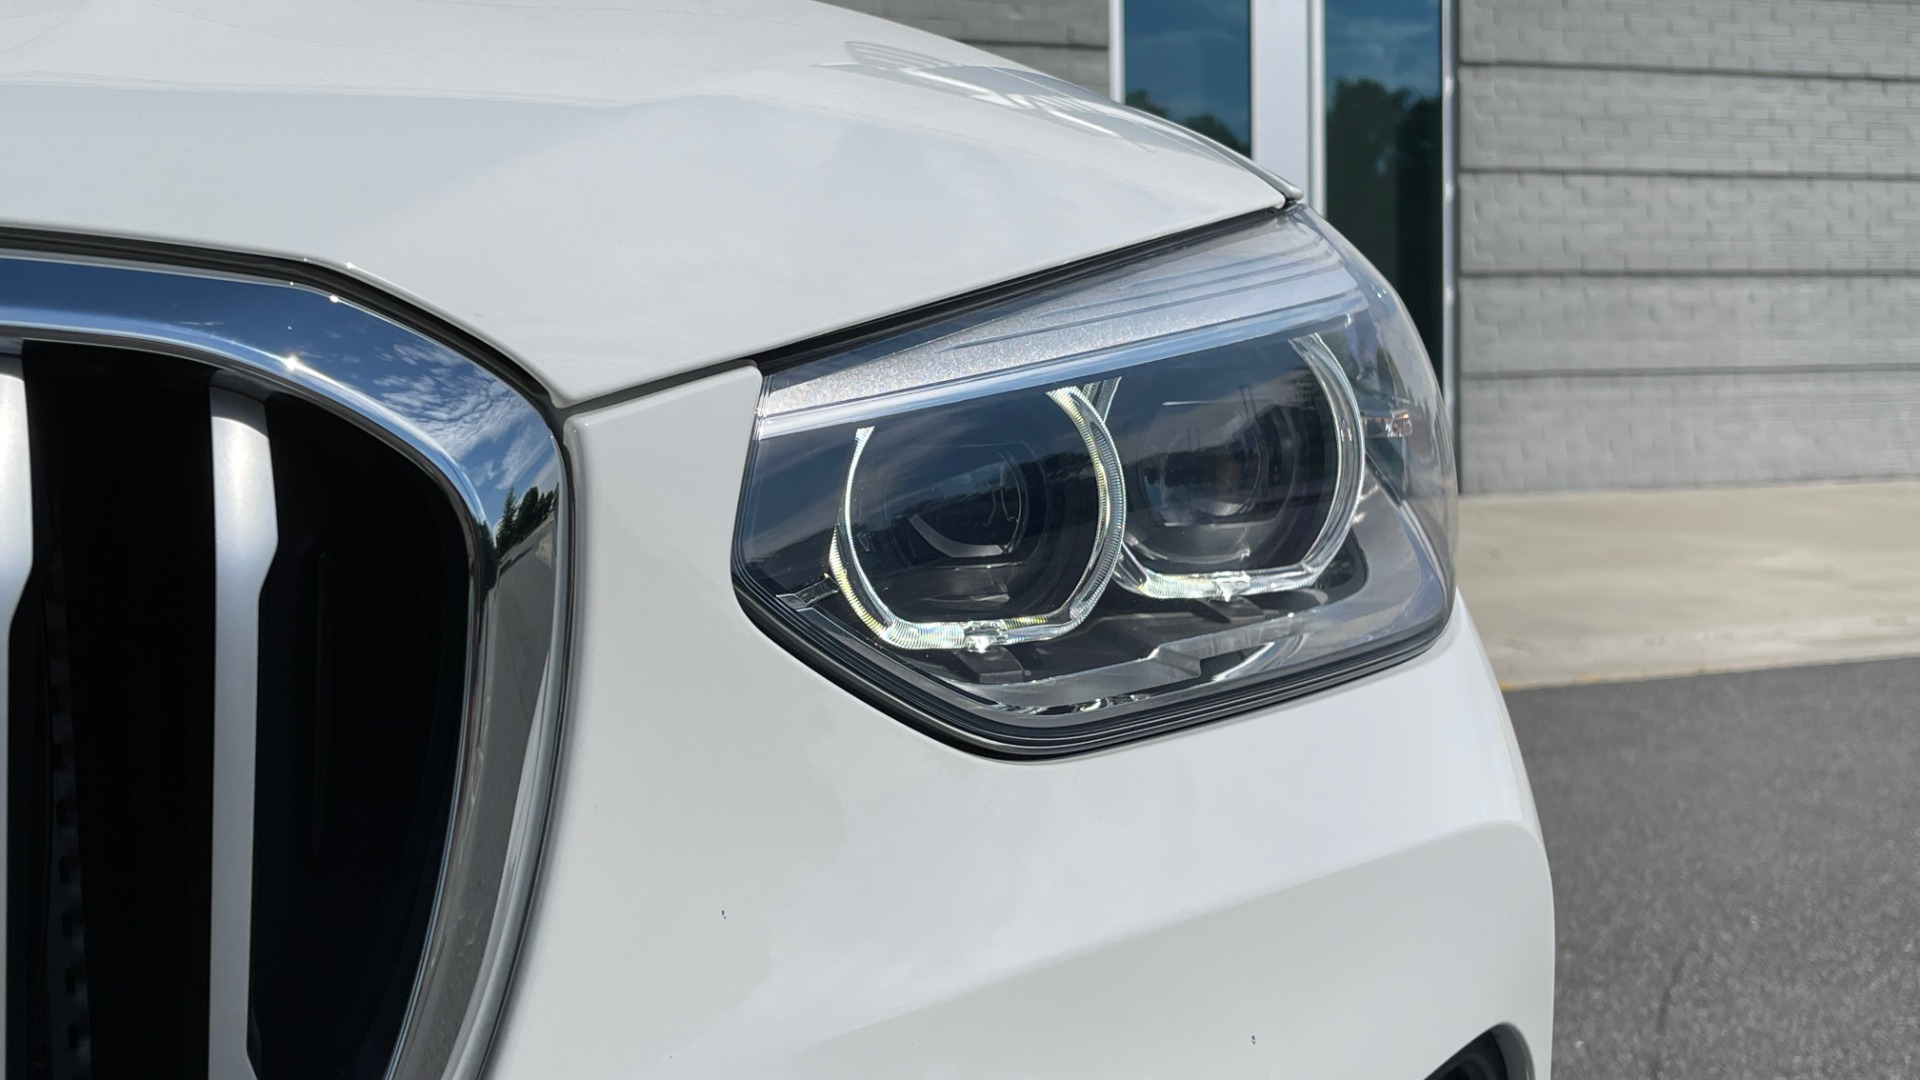 Used 2018 BMW X3 XDRIVE30I CONVENIENCE PKG / HEATED FRONT SEATS / REARVIEW for sale $36,595 at Formula Imports in Charlotte NC 28227 13